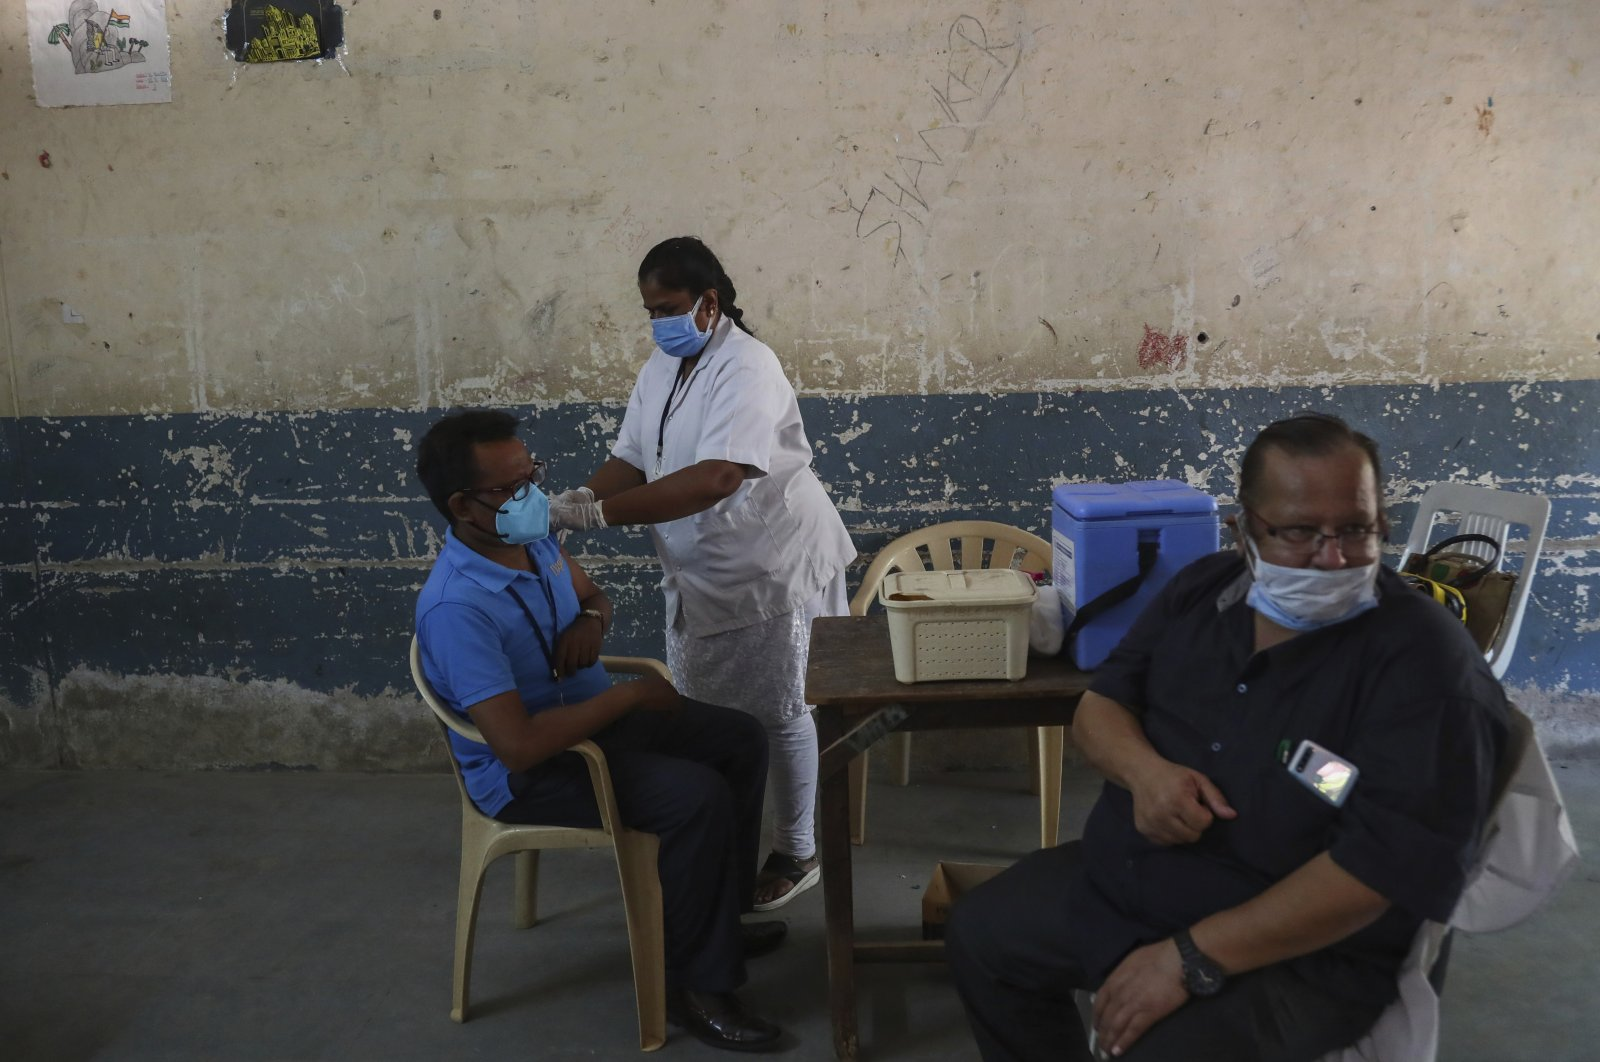 A health worker administers Covishield, the Serum Institute of India's version of the AstraZeneca vaccine, to a man during a special vaccination drive held on the premises of a government school in Hyderabad, India, May 30, 2021. (AP Photo)